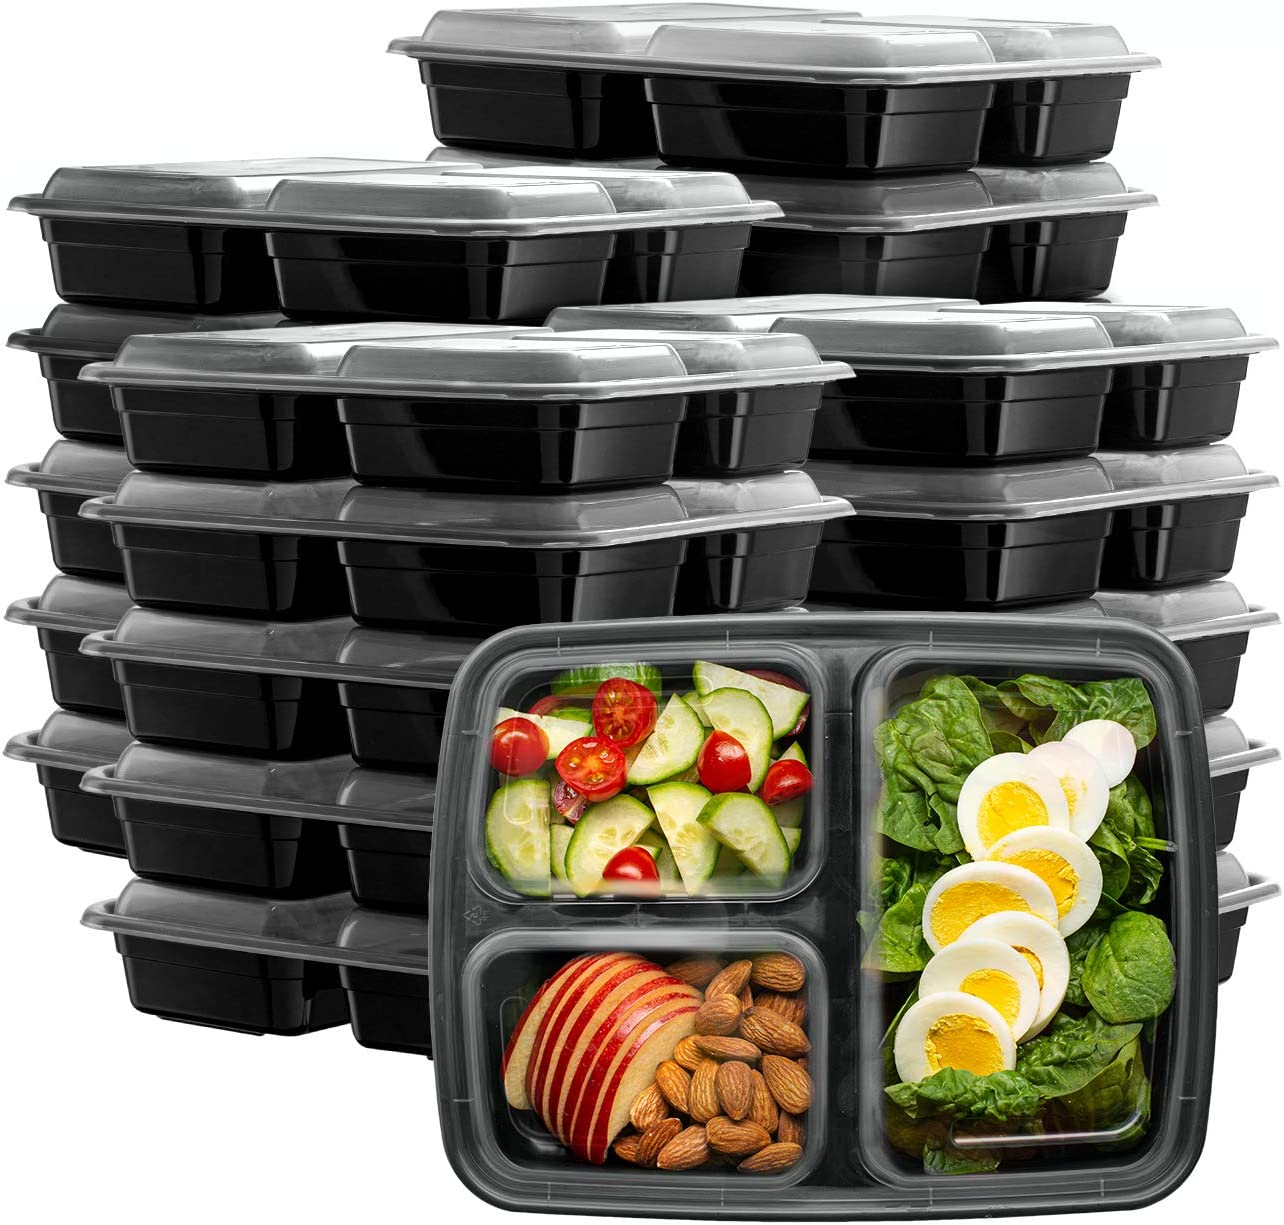 [50 Sets] Meal Prep Containers With Lids, 3 Compartment Lunch Containers, Bento Boxes, Food Storage Containers - 32 oz.